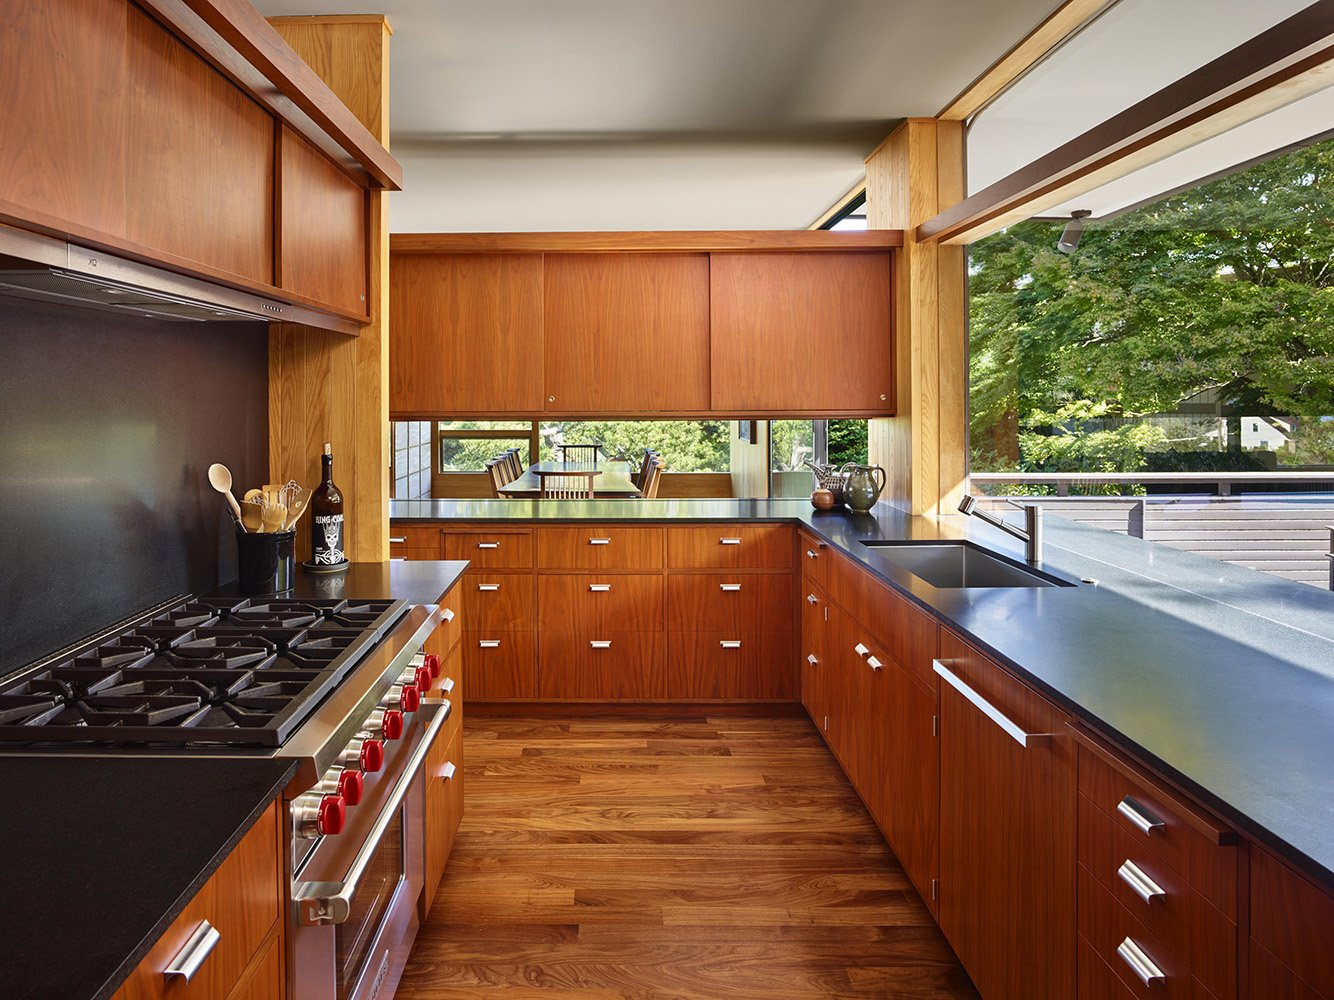 A Wolf range, its exhaust venting hidden by new casework, is surrounded by walnut cabinets and cupboards designed to match the originals